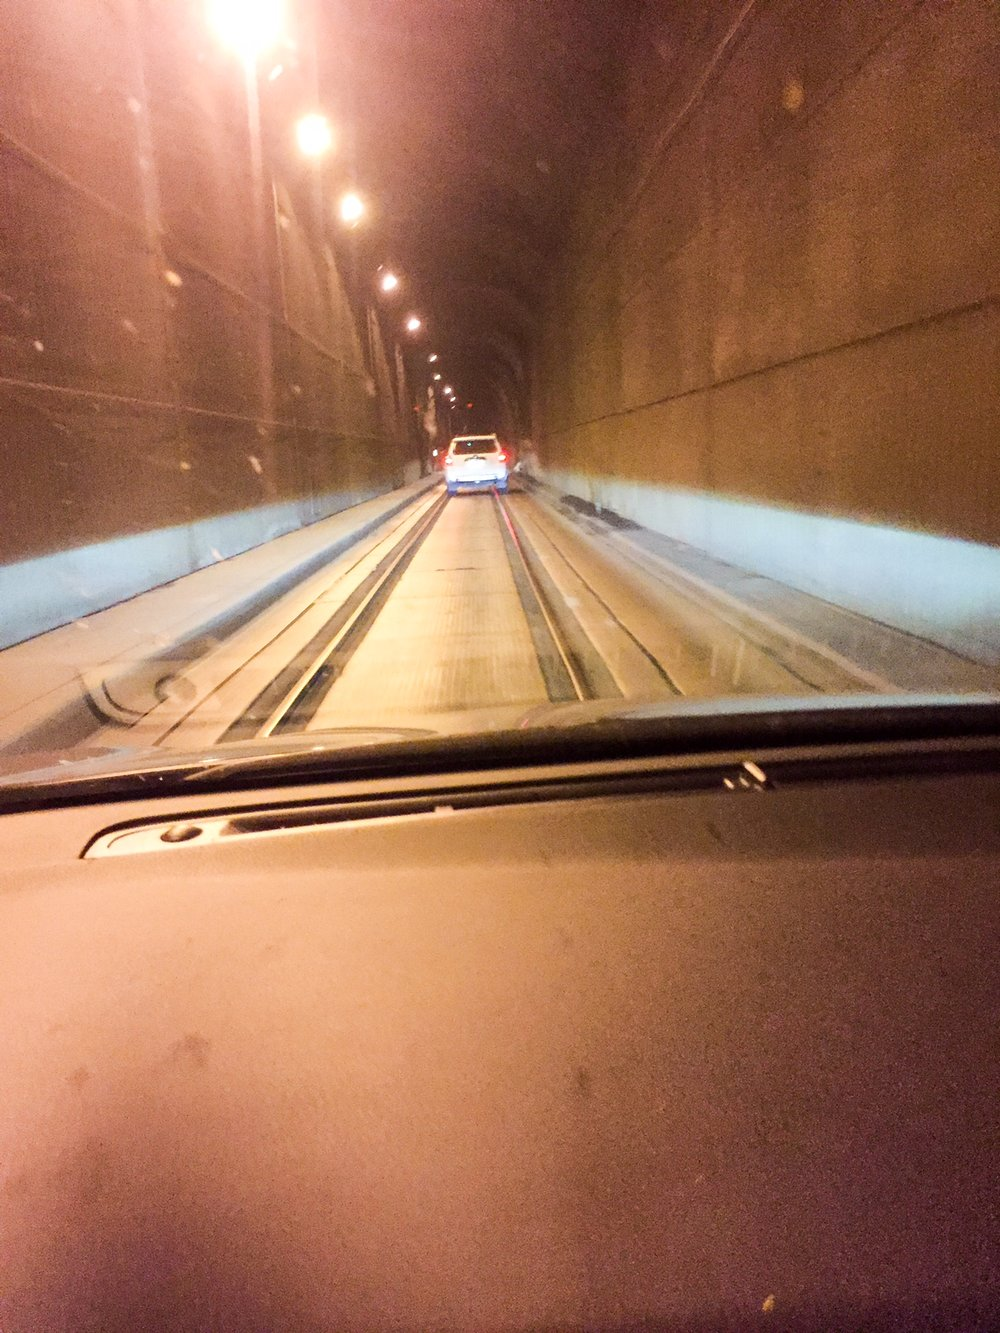 This is the tunnel. I know, it was anticlimactic for me, too.